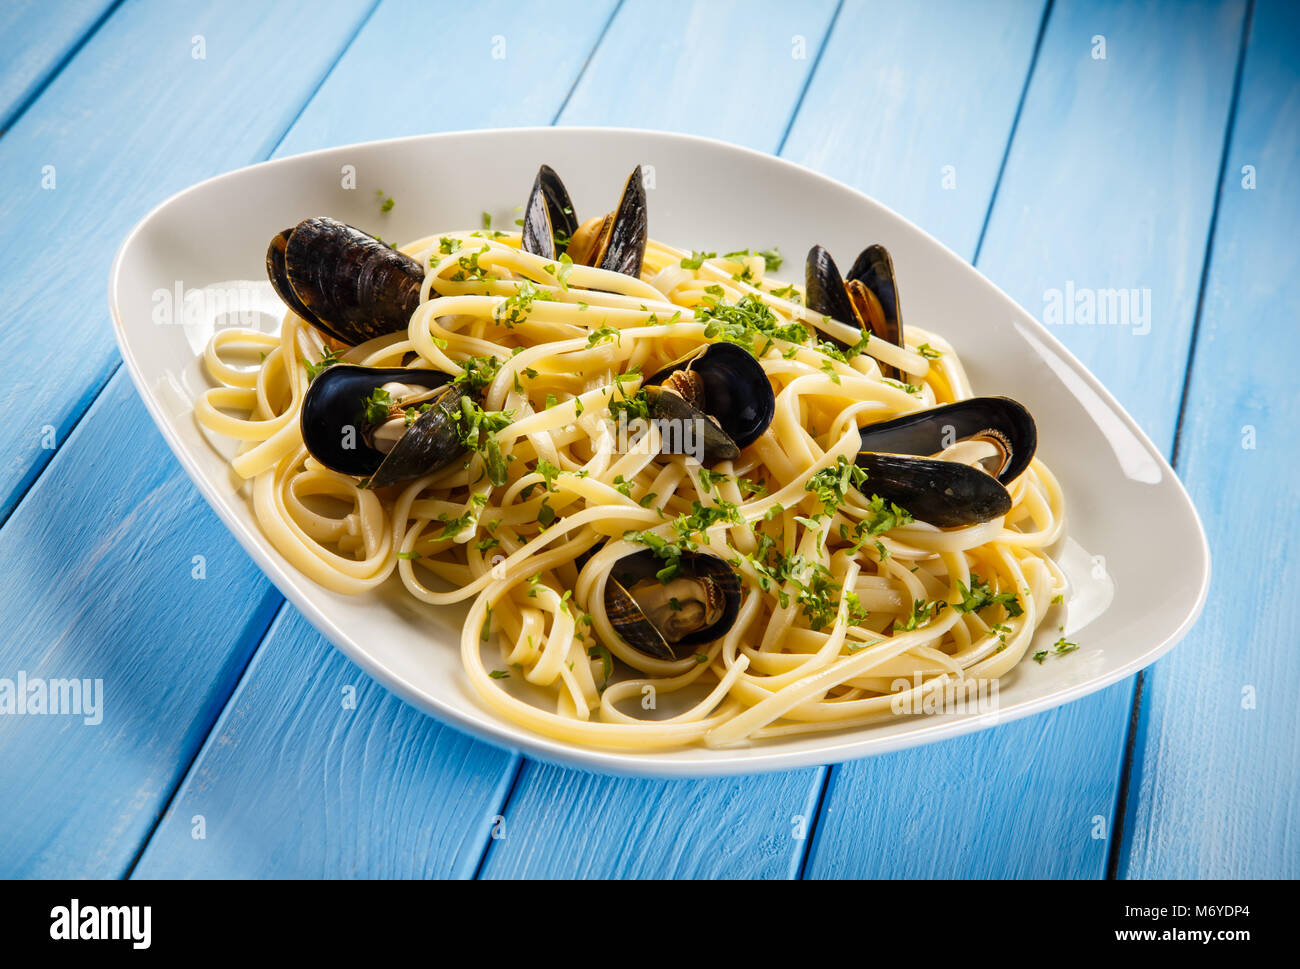 Cooked mussels and pasta - Stock Image